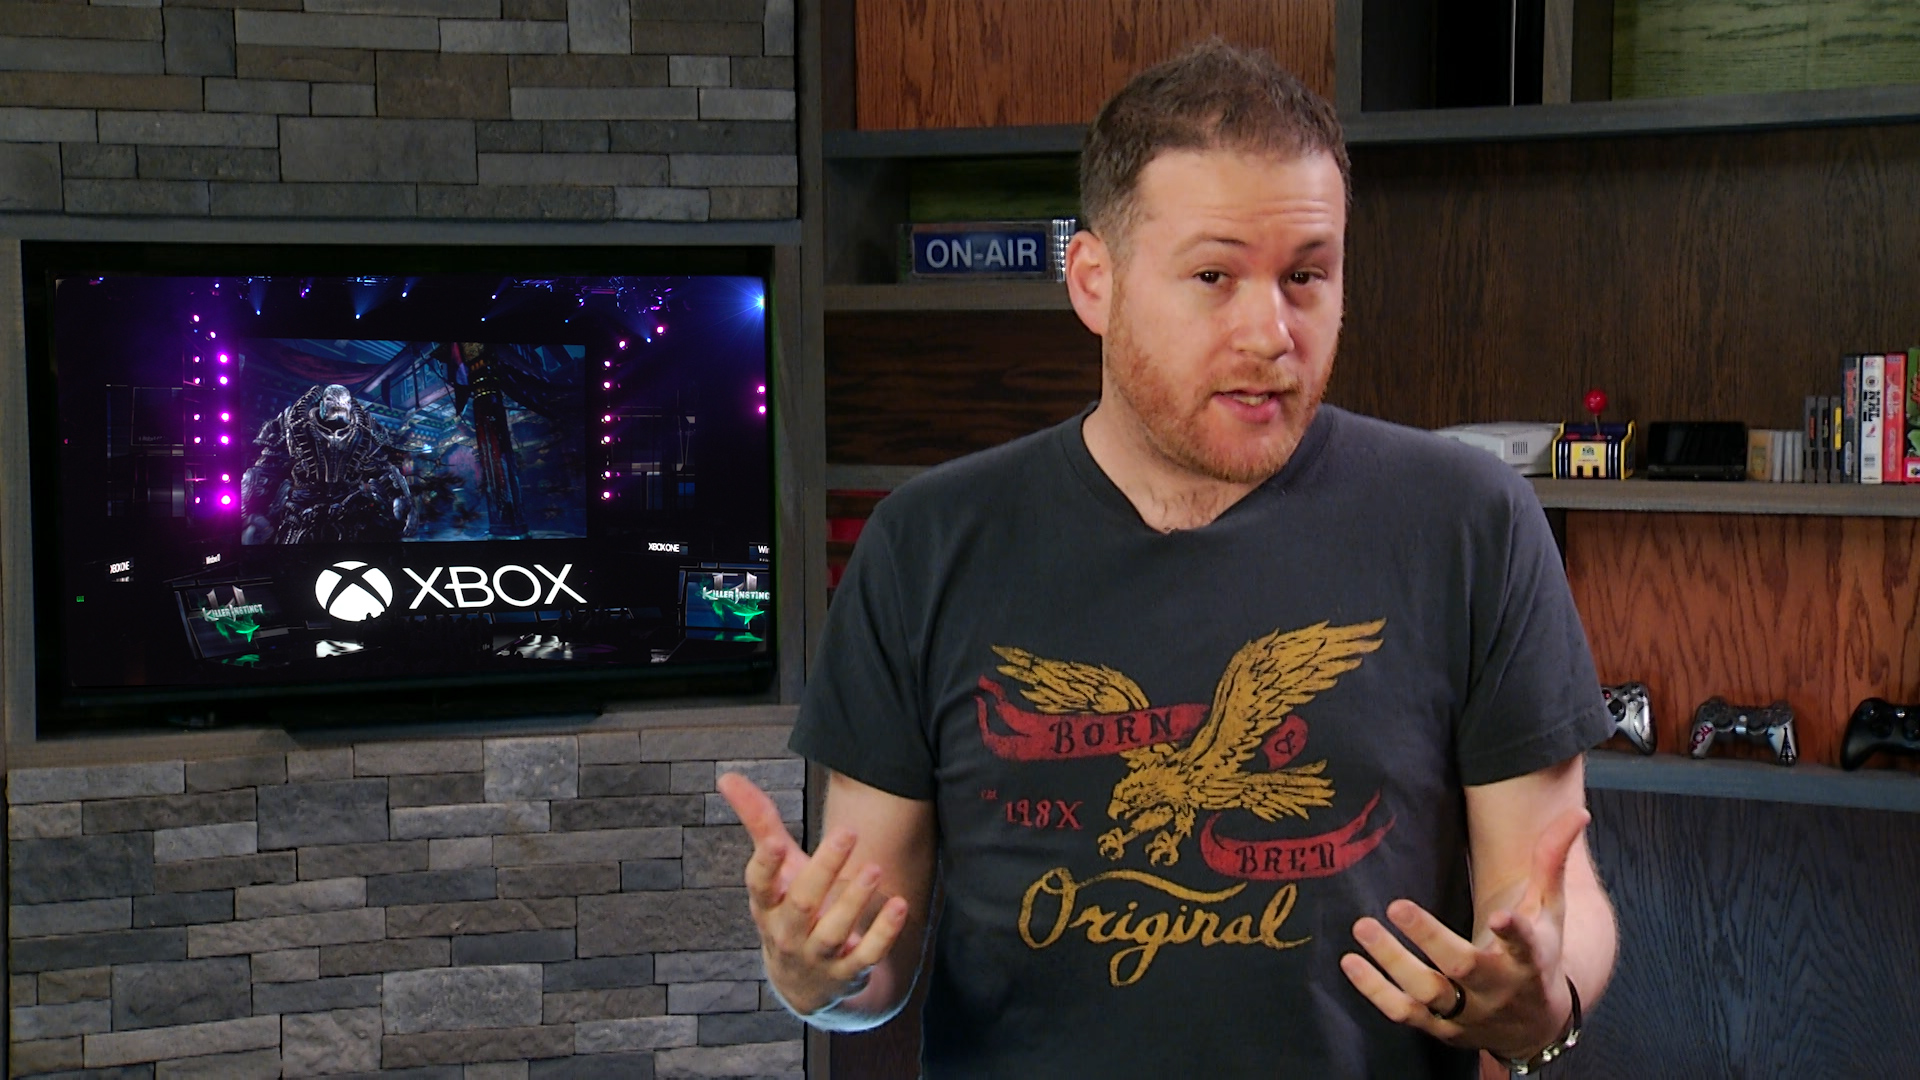 Video: Microsoft vs. Sony: Who has the lead?